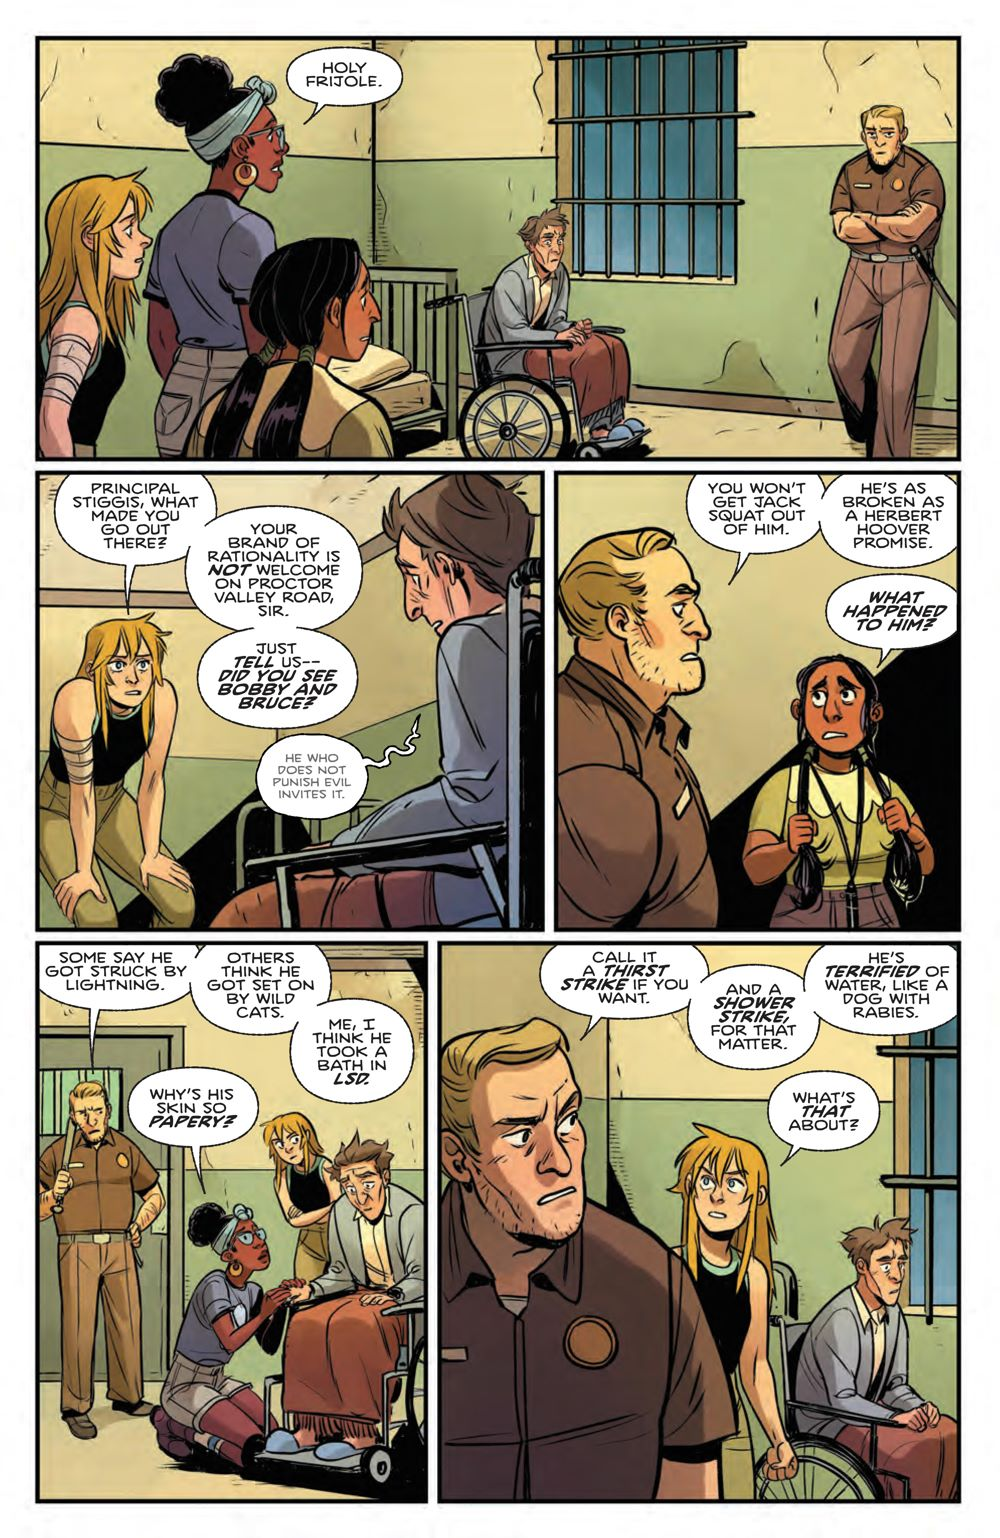 ProctorValleyRoad_004_PRESS_8 ComicList Previews: PROCTOR VALLEY ROAD #4 (OF 5)